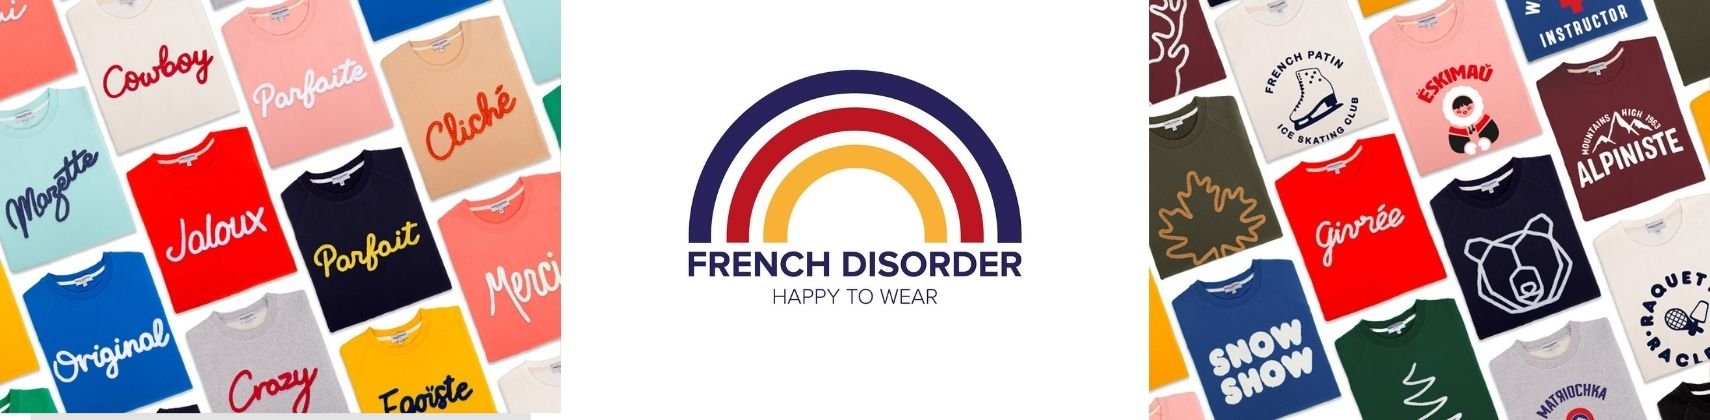 French Disorder Sweat